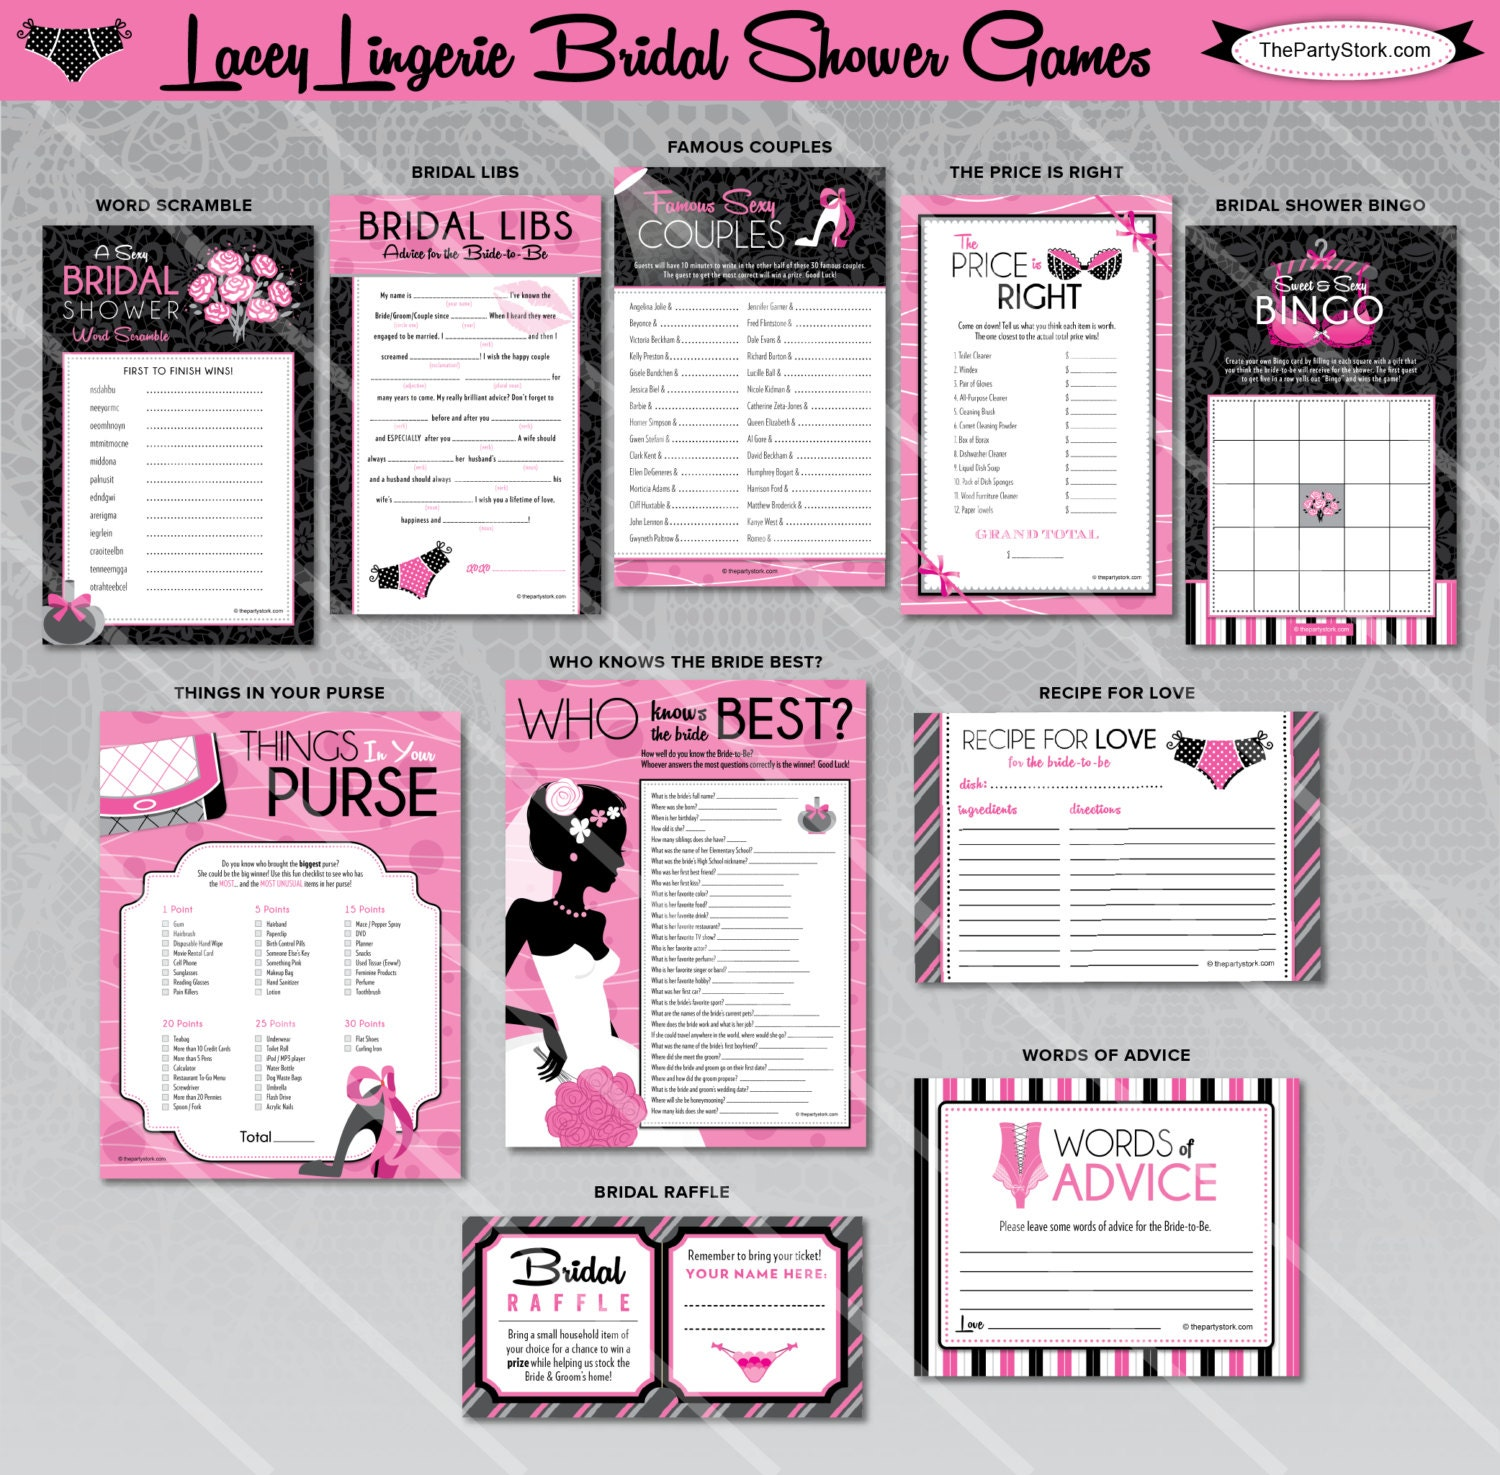 Lingerie Bridal Shower Games Printable Wedding By